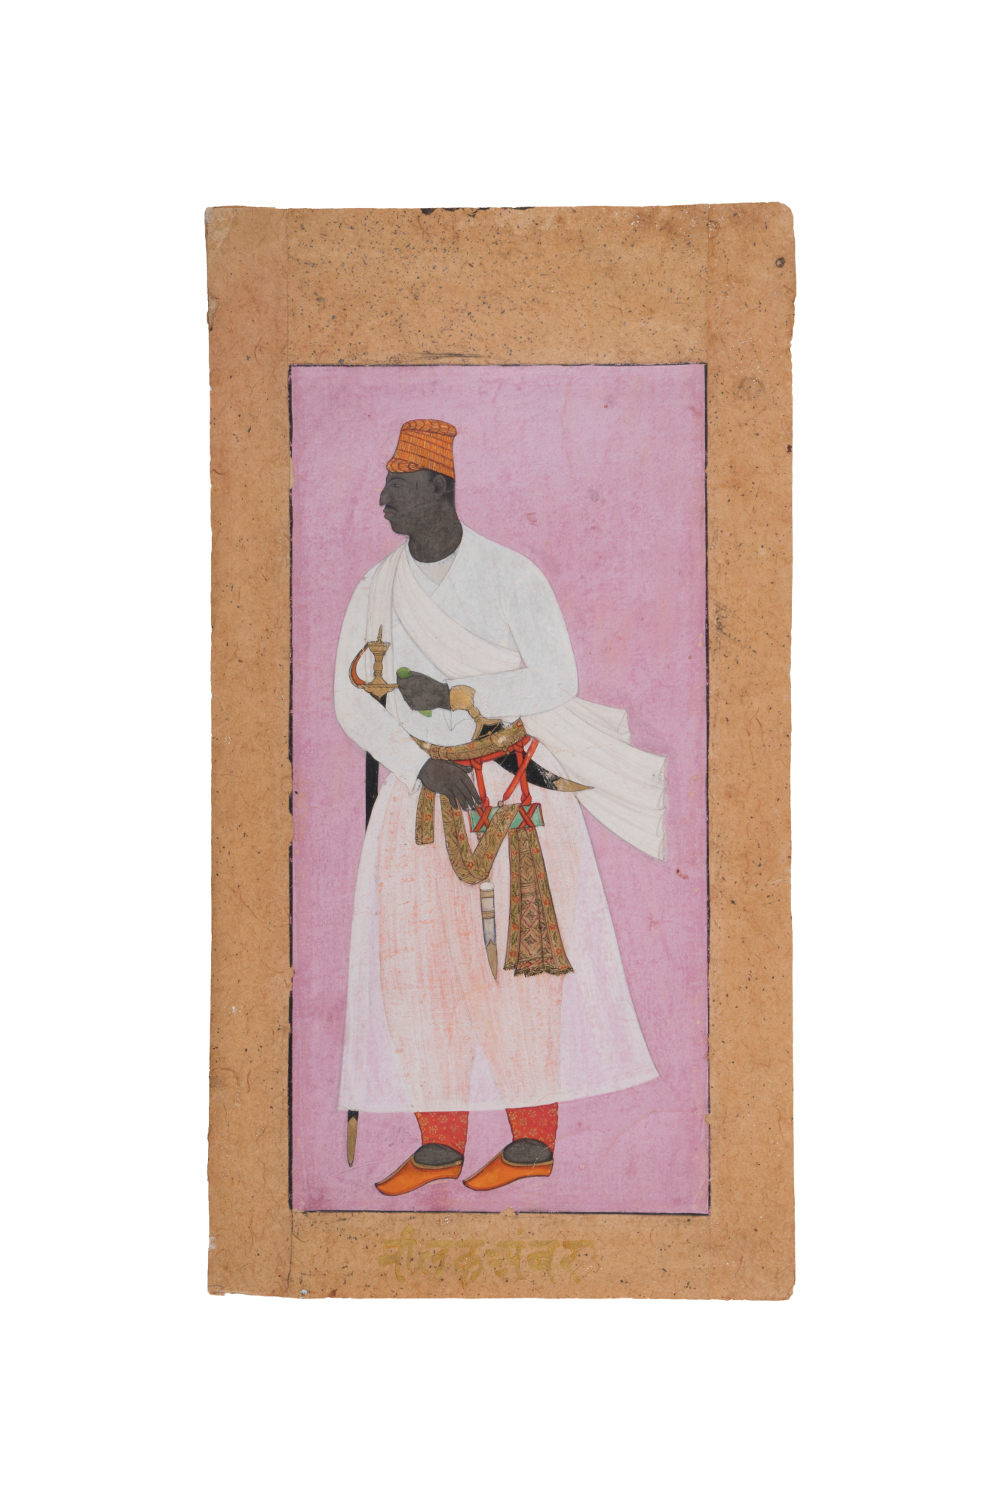 A portrait of an African nobleman - Gouache and gold on paperAhmadnagar, Maharashtra, IndiaAbout AD 1605–10 National Museum, New DelhiThis portrait is inscribed with the name of Malik Ambar (1548–1626), who was born in Ethiopia and was sold into slavery as a young boy. He was brought by his owner to the Ahmadnagar Sultanate in the Deccan, where he was freed and had an illustrious career in the military. He became a thorn in the side of the Mughals and rose to become prime minister and general of Ahmadnagar.